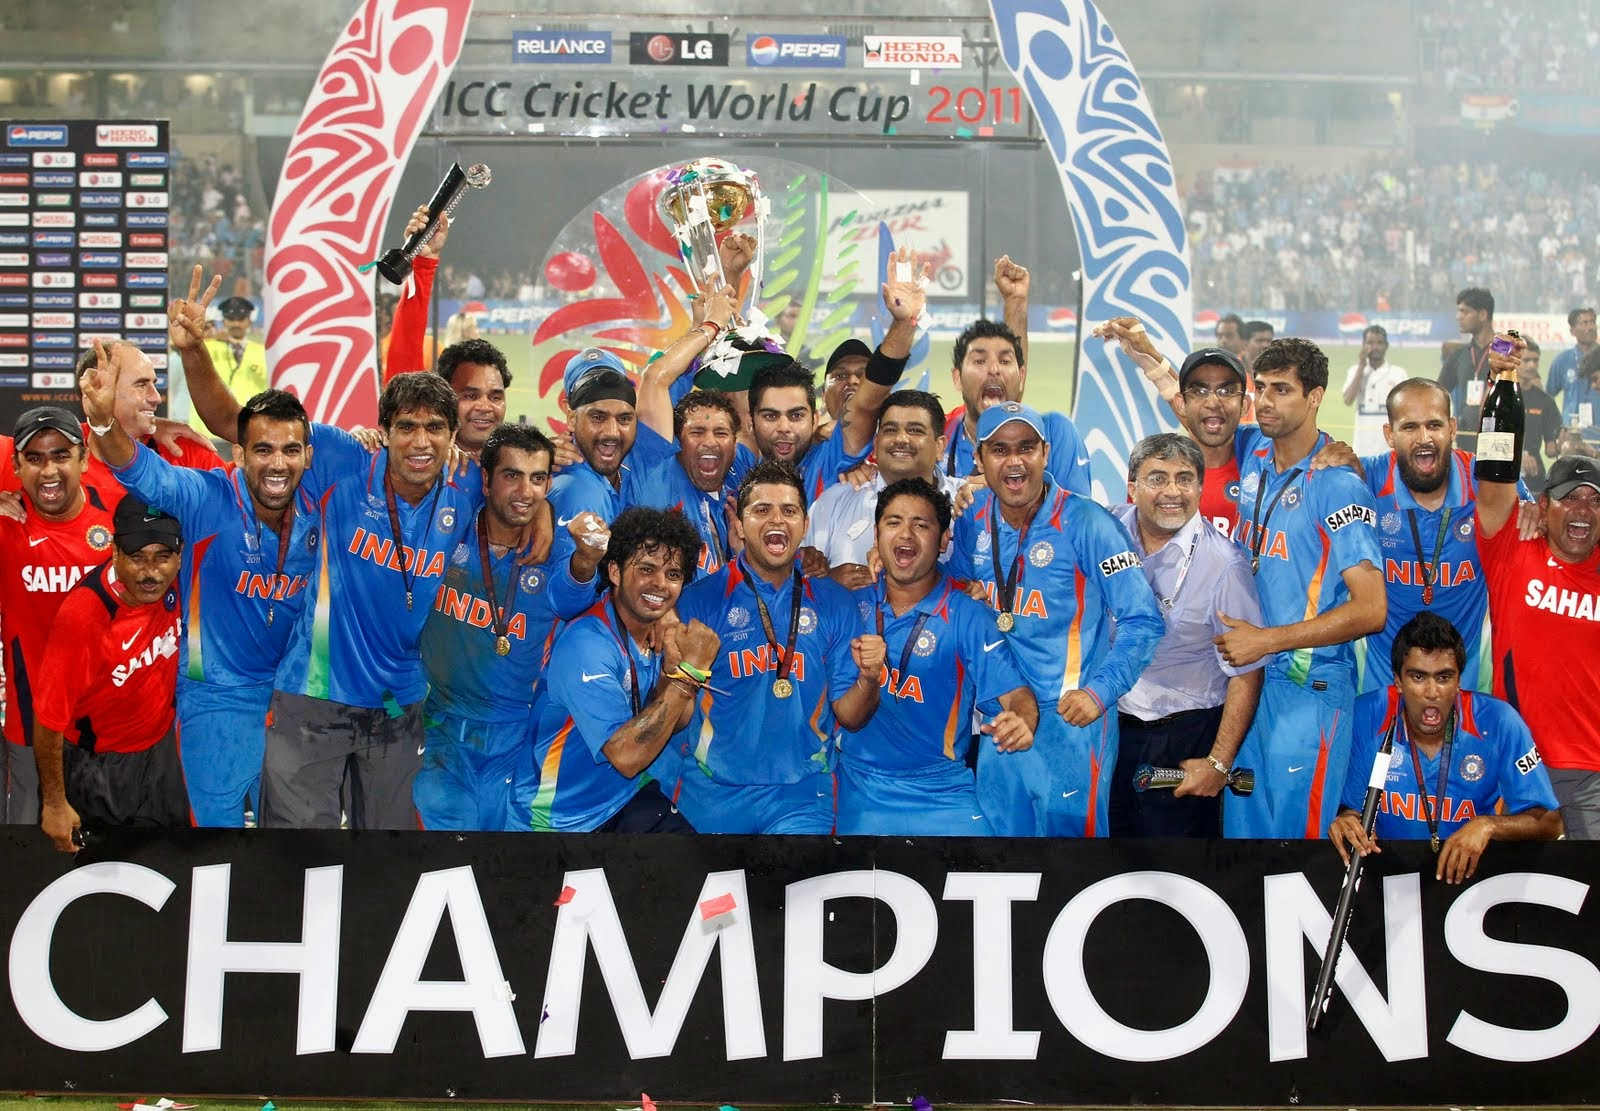 WATCH LIVE CRICKET WORLD CUP 2015 MATCH 20 INDIA VS UAE   LIVE COMMENTARY, FULL SCORECARD   MATCH PREDICTION